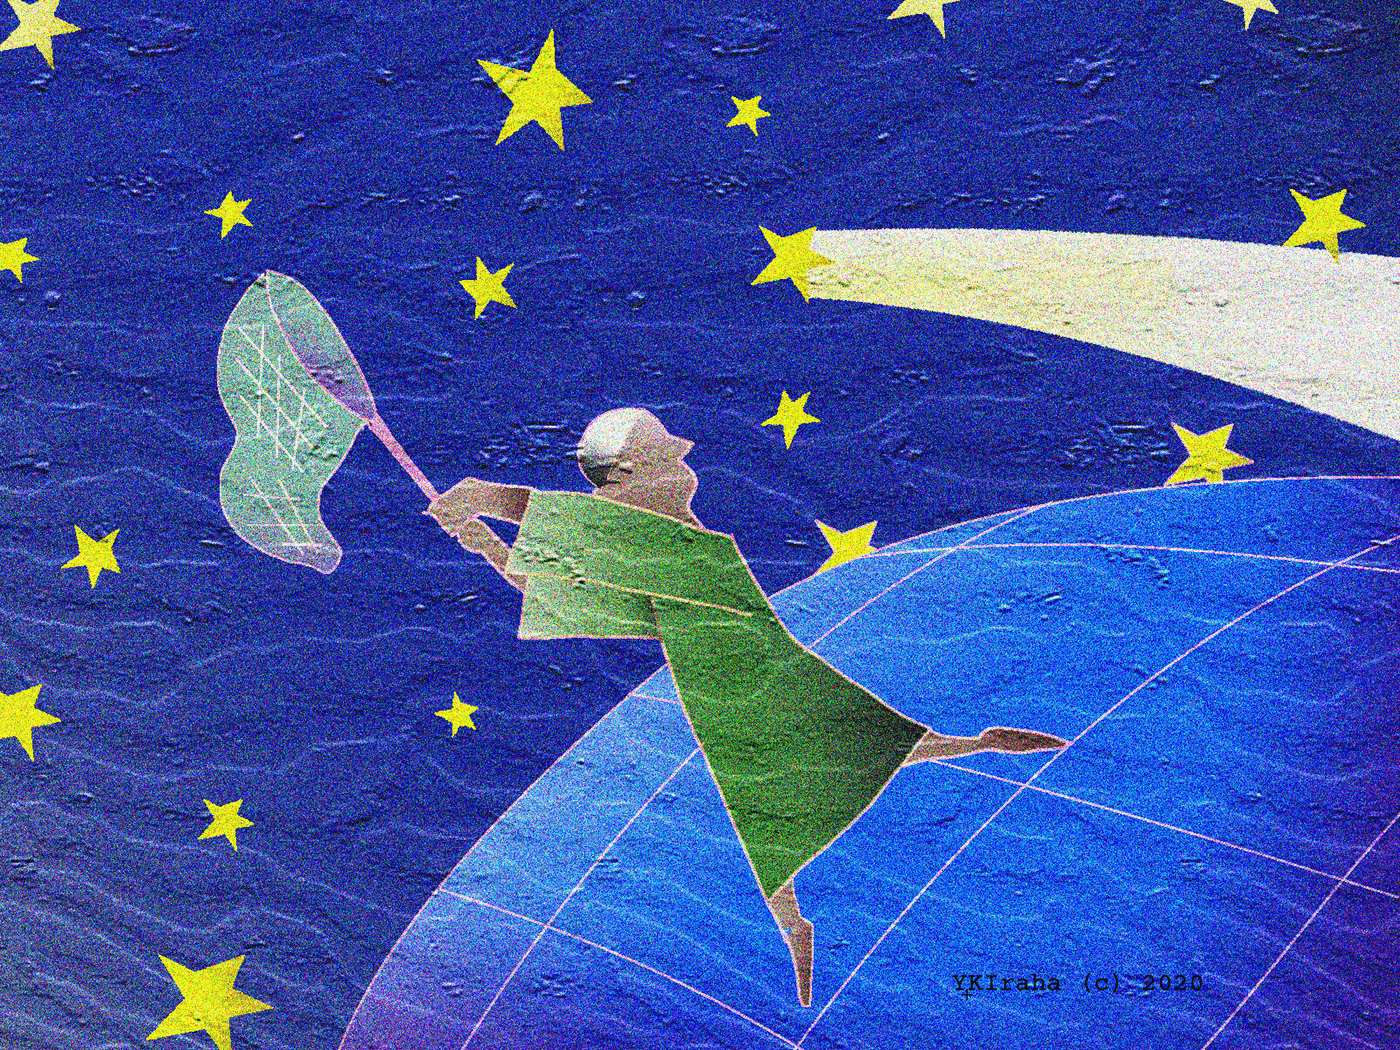 yukio kevin iraha's whimsical illustration about a guy try to catch comet.